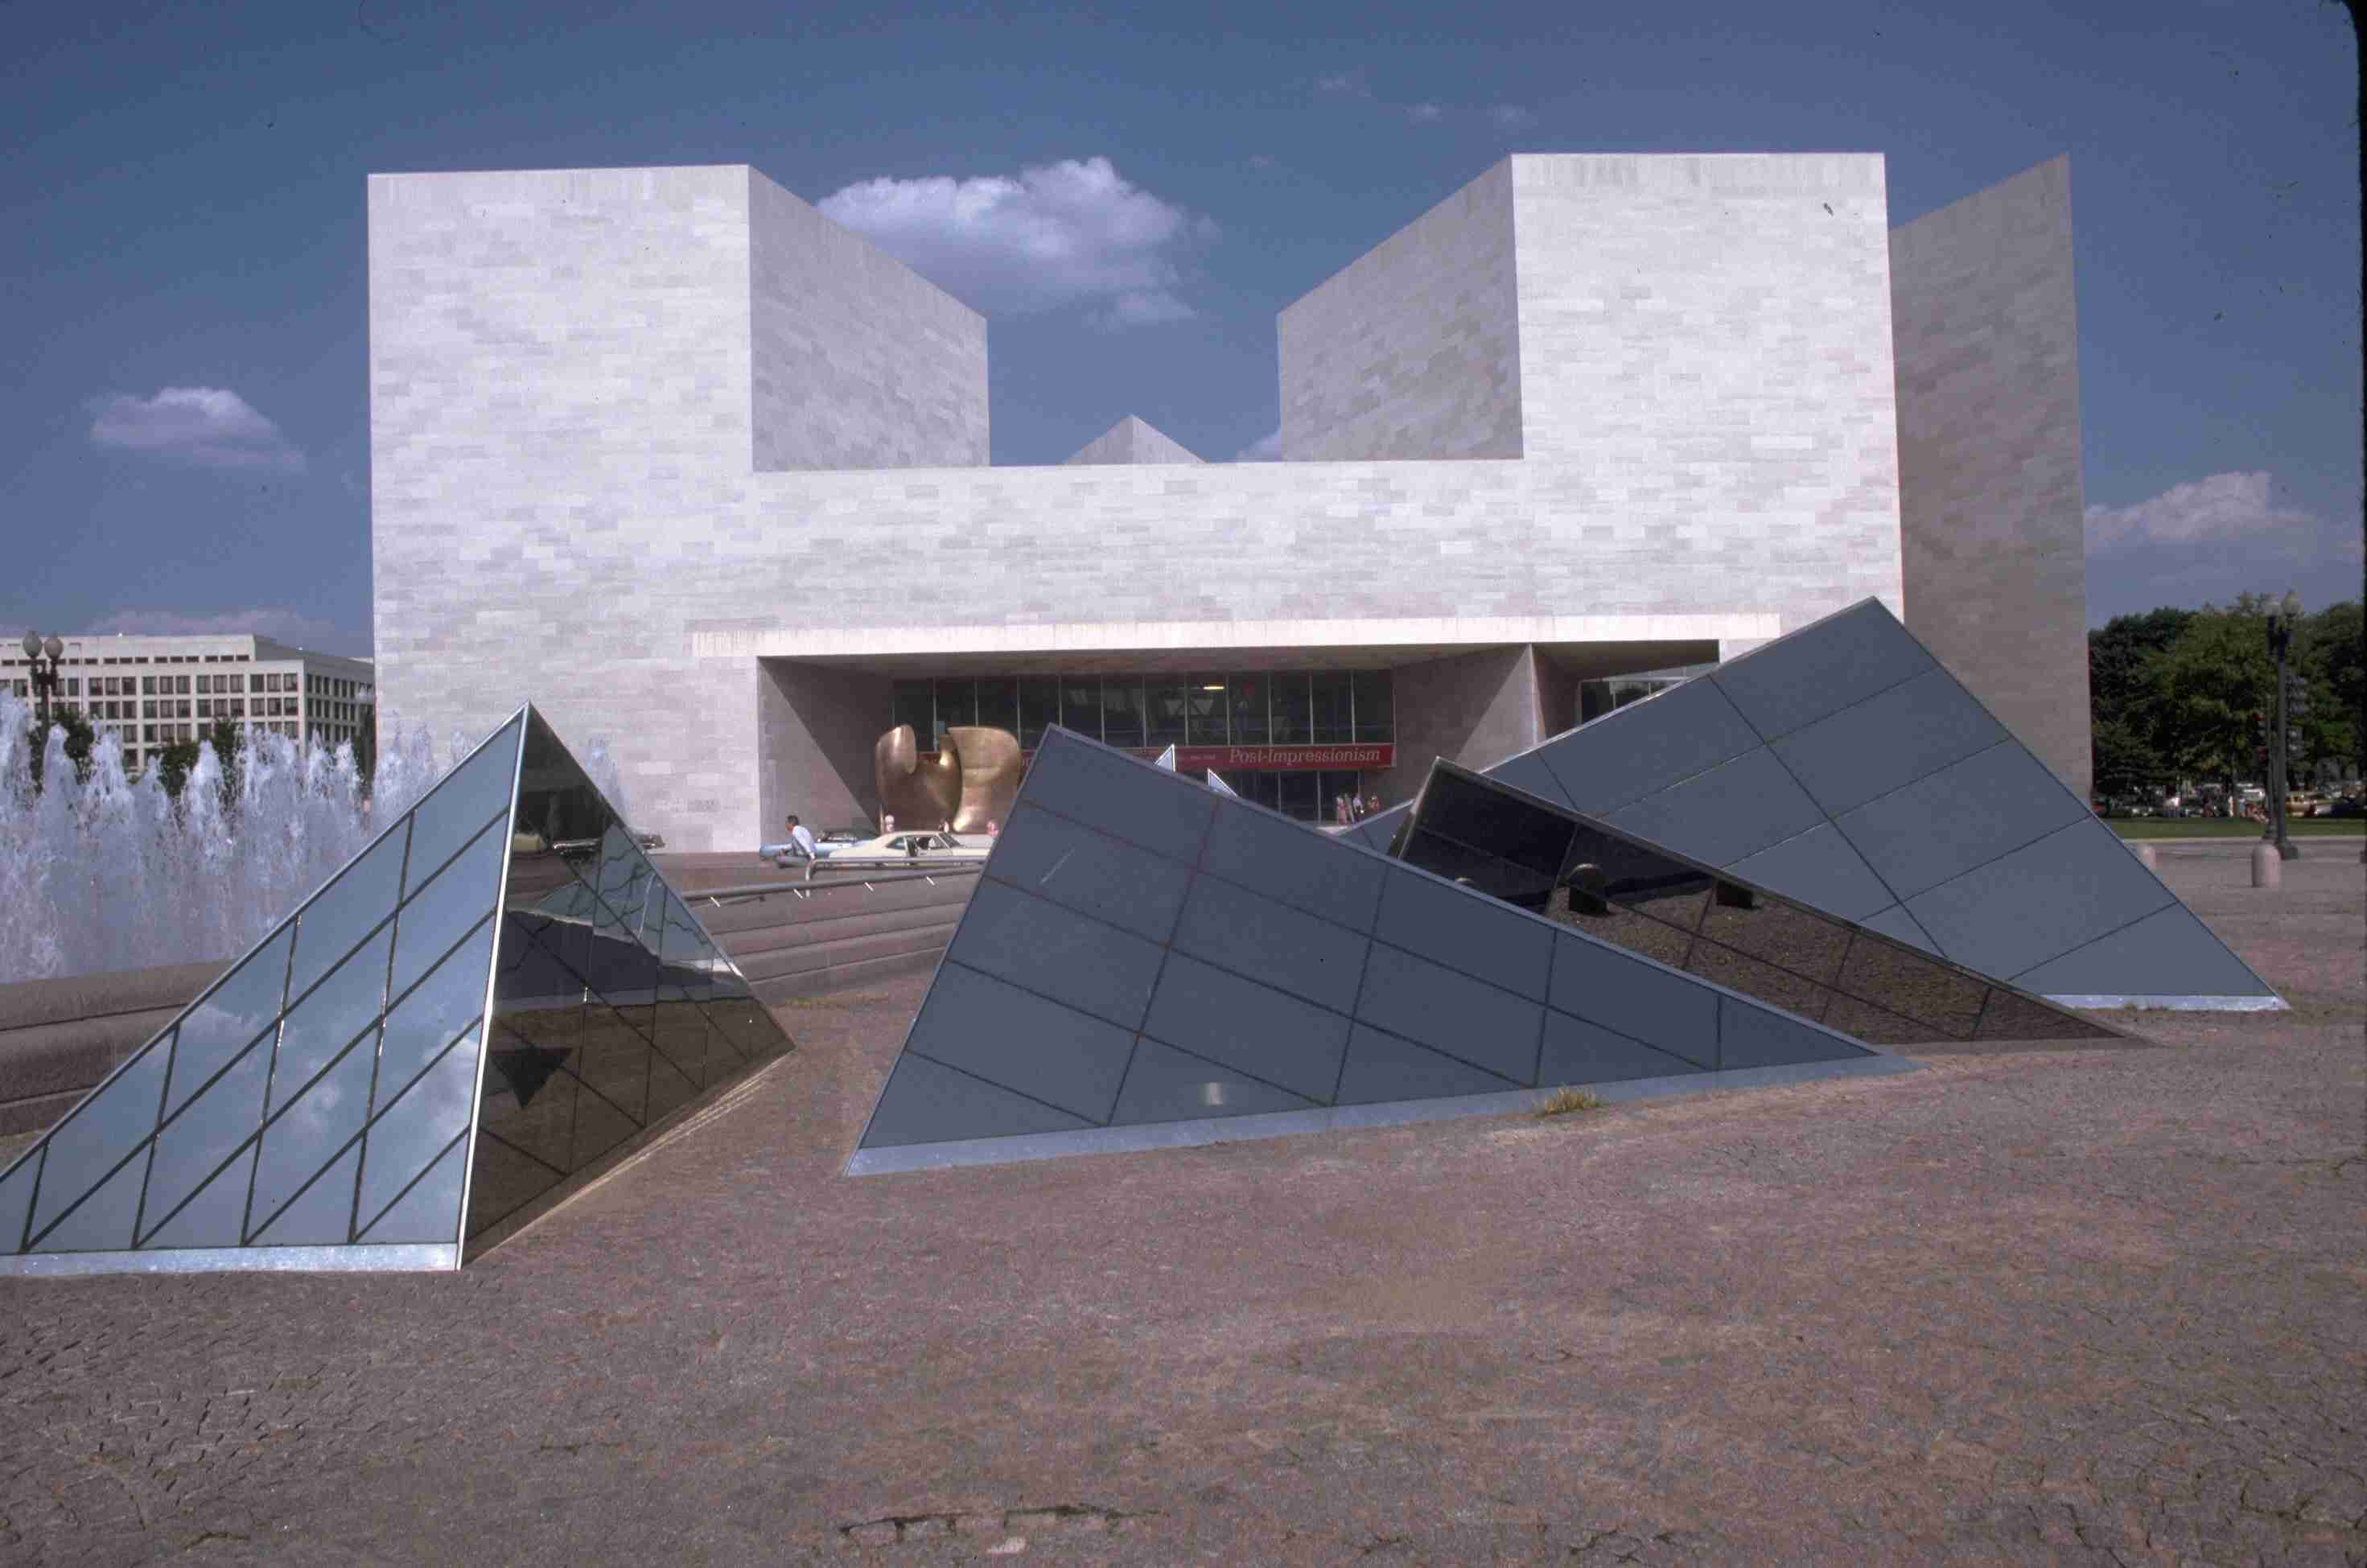 modern white stone building in background and glass pyramids on ground in foreground